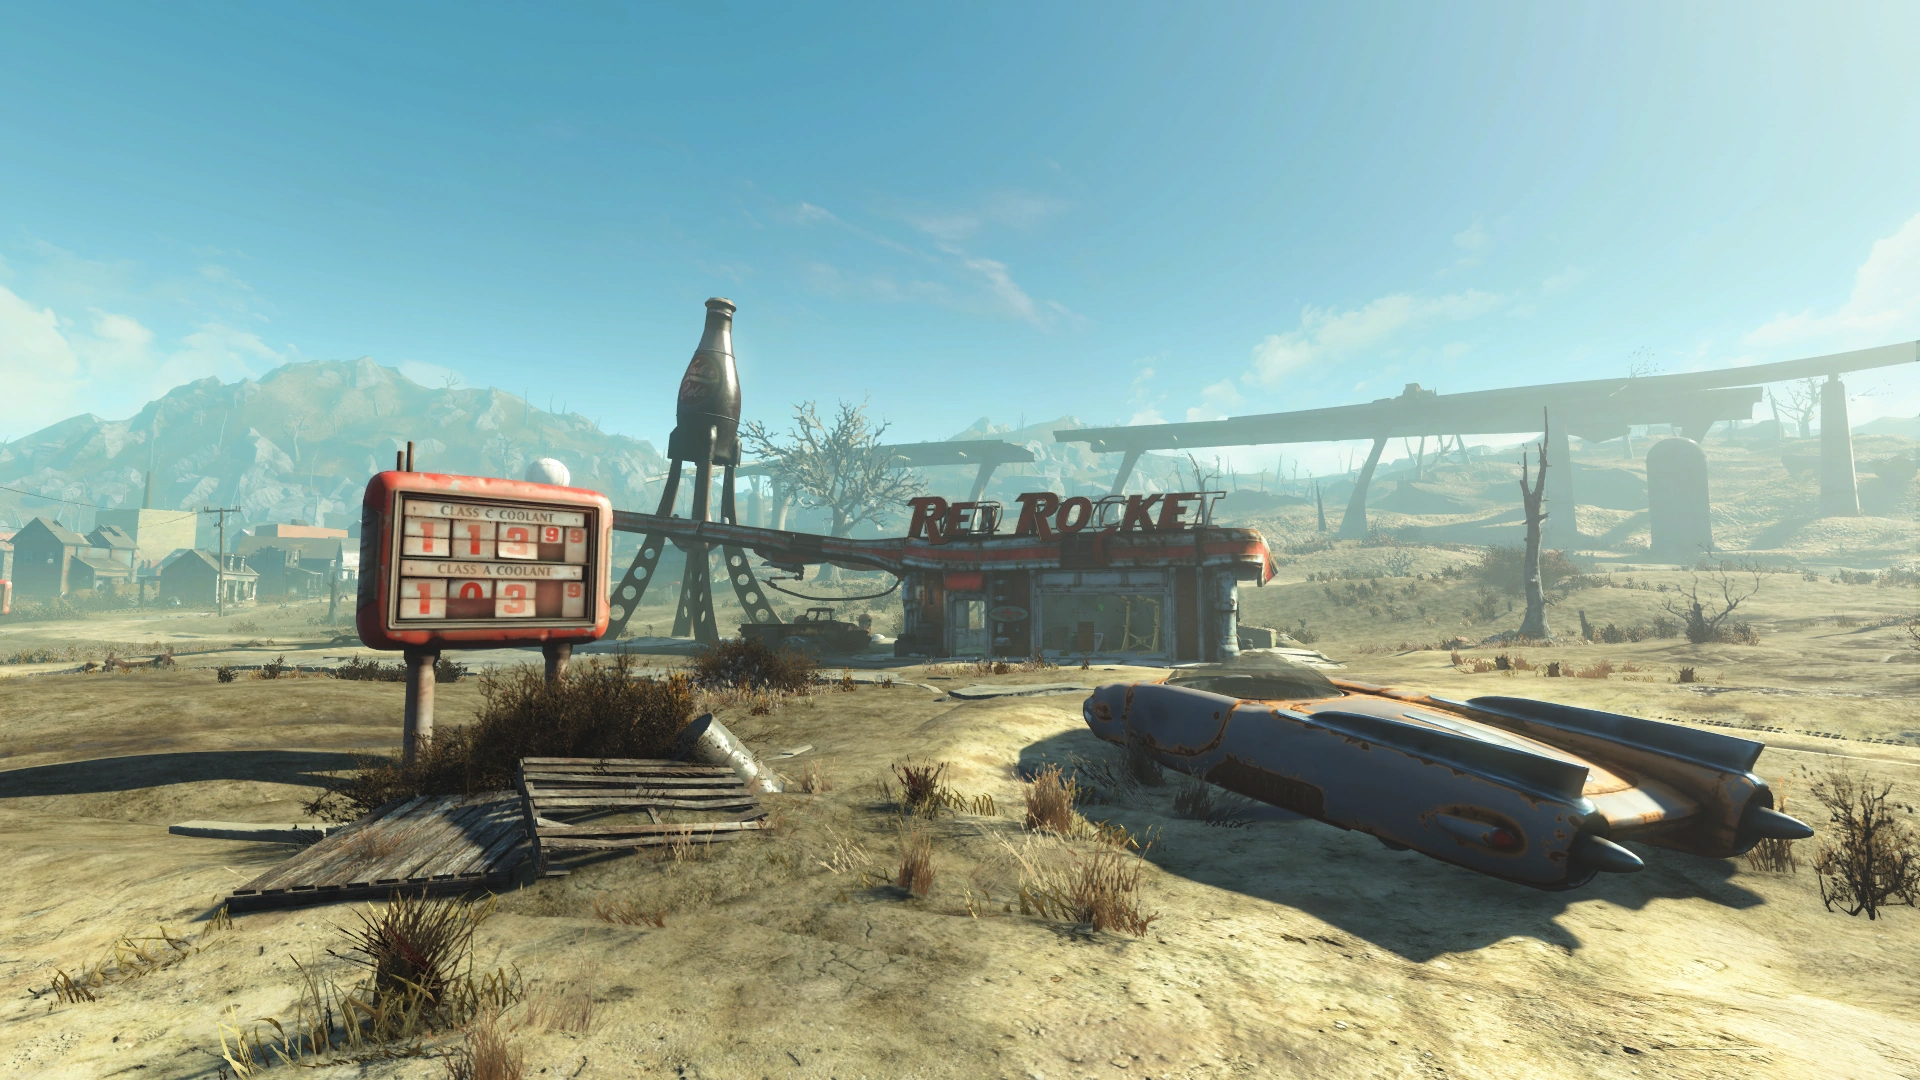 Nuka-World Red Rocket | Fallout Wiki | FANDOM powered by Wikia